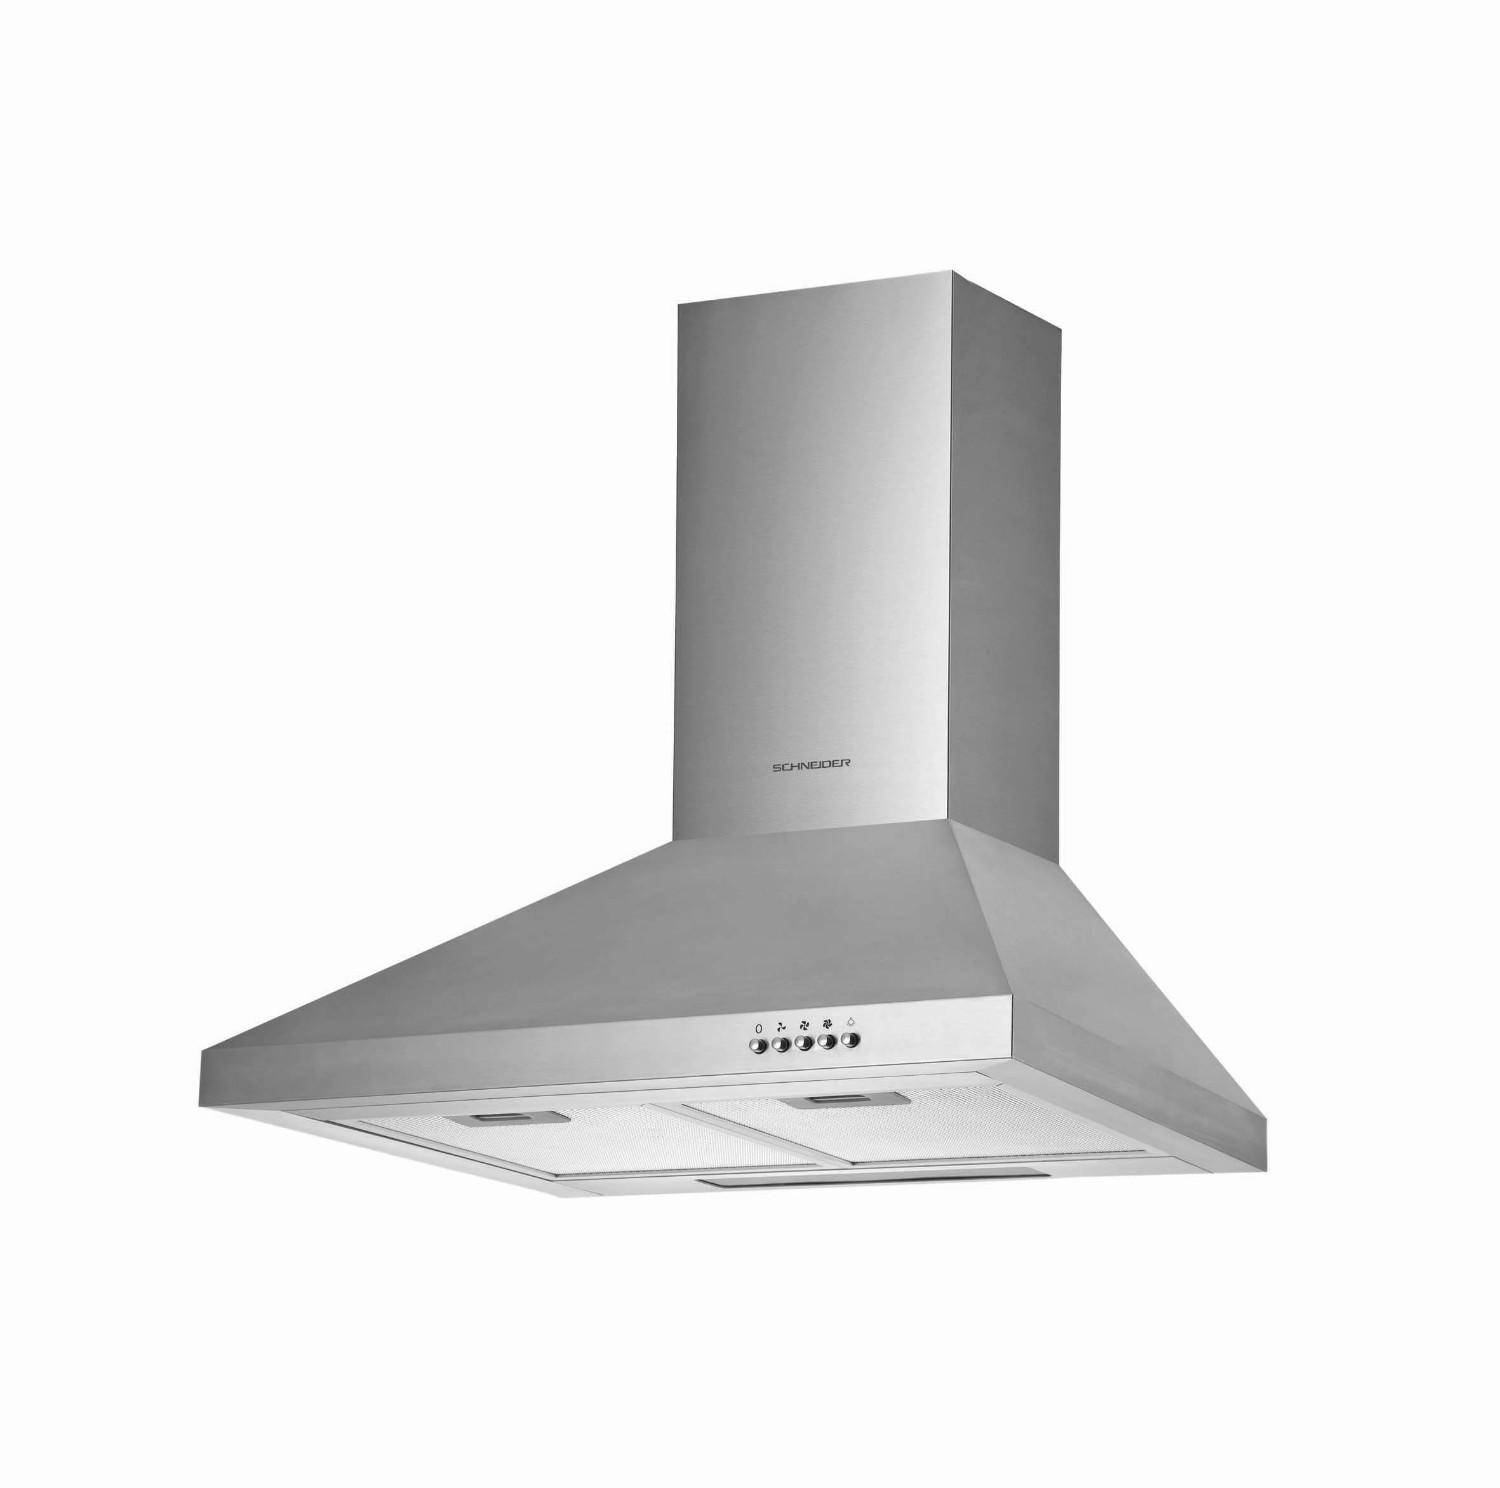 Pyramid wall-mounted extraction hood 60 cm - Schneider